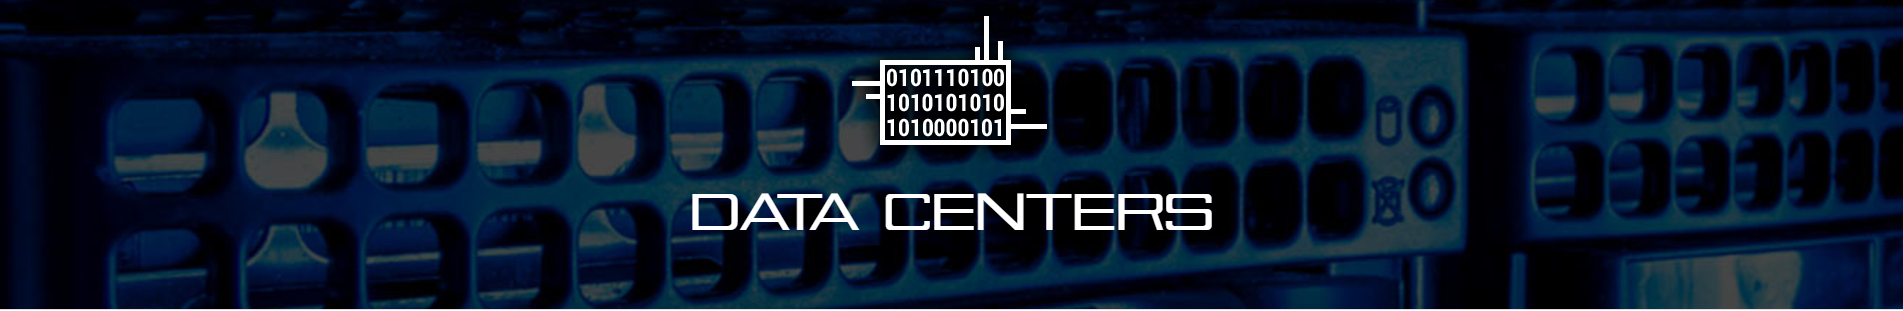 data centers.PNG